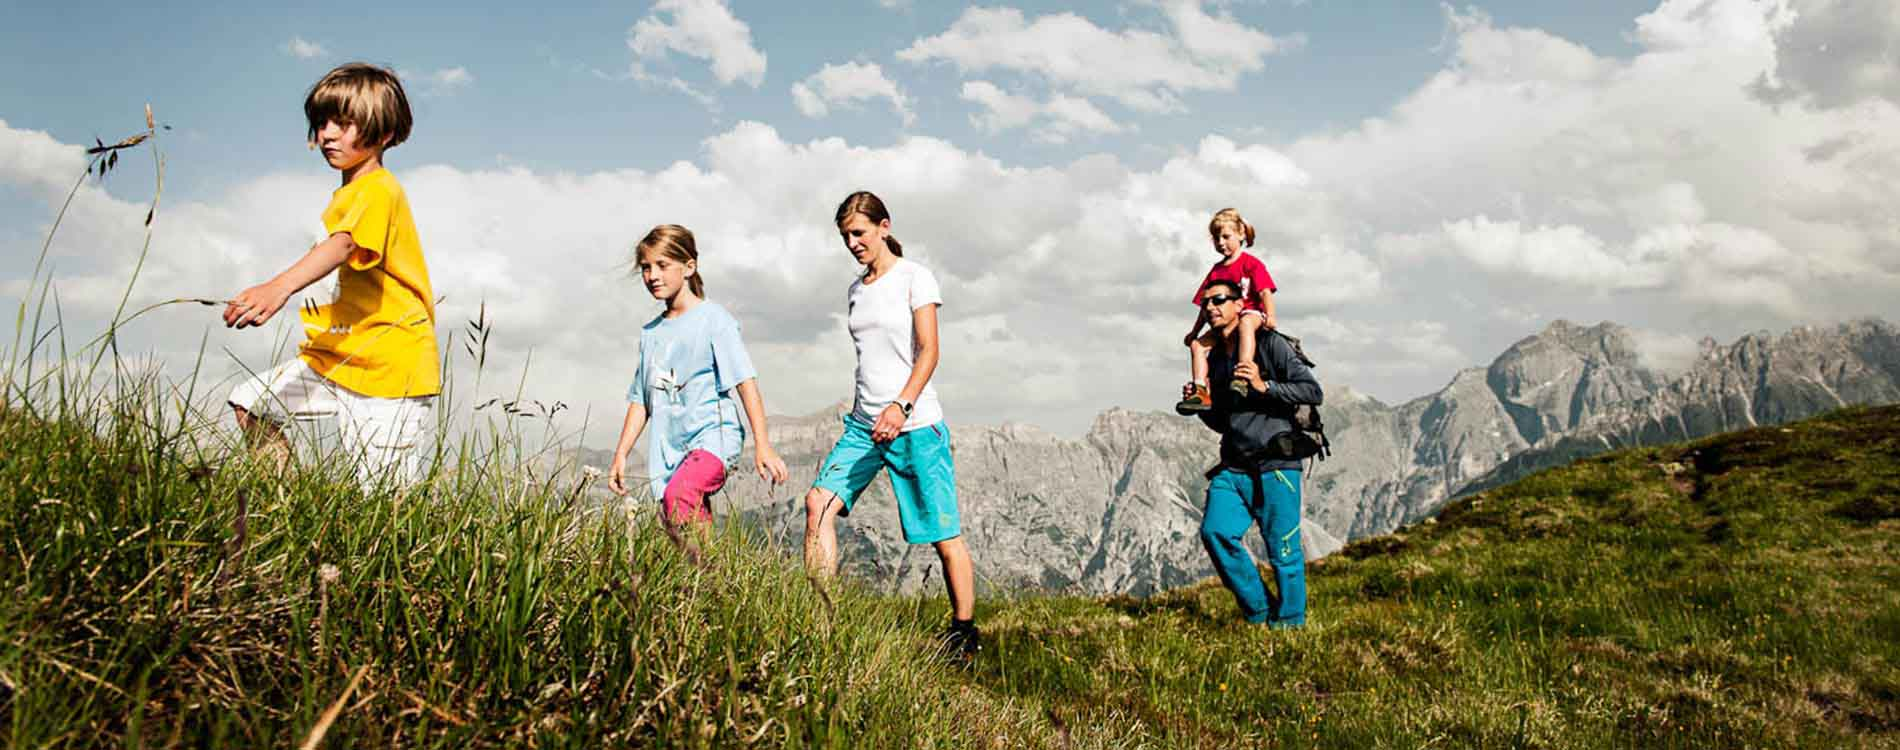 Big Family summer & autumn weeks at SPA-HOTEL Jagdhof in Neustift, Stubai Valley, Tyrol